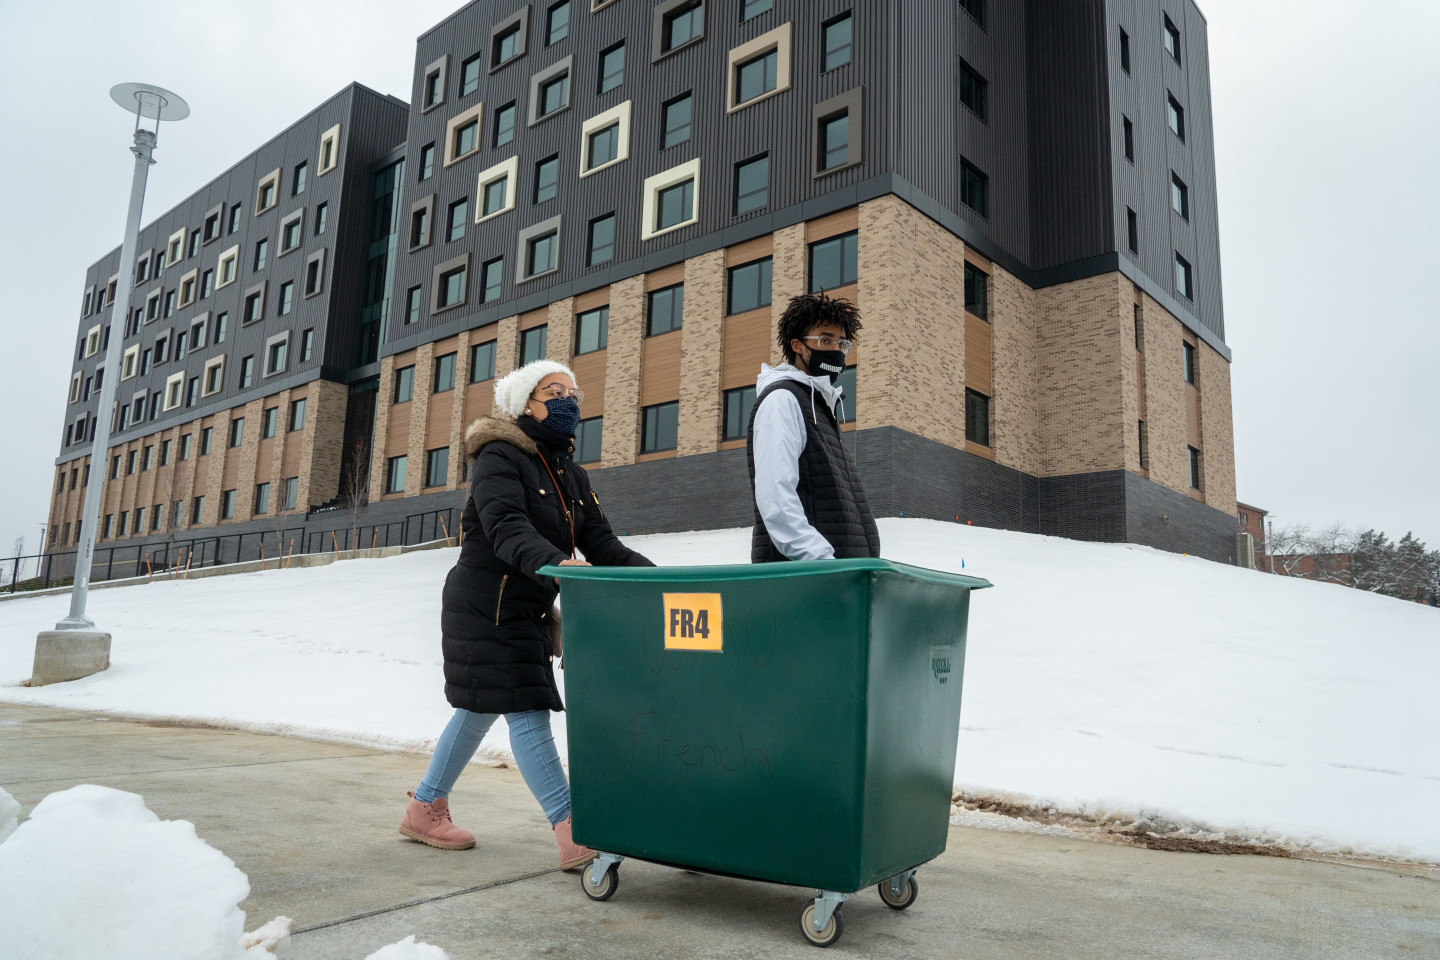 Students push a large bin down the sidewalk in front of Arcadia Flats.